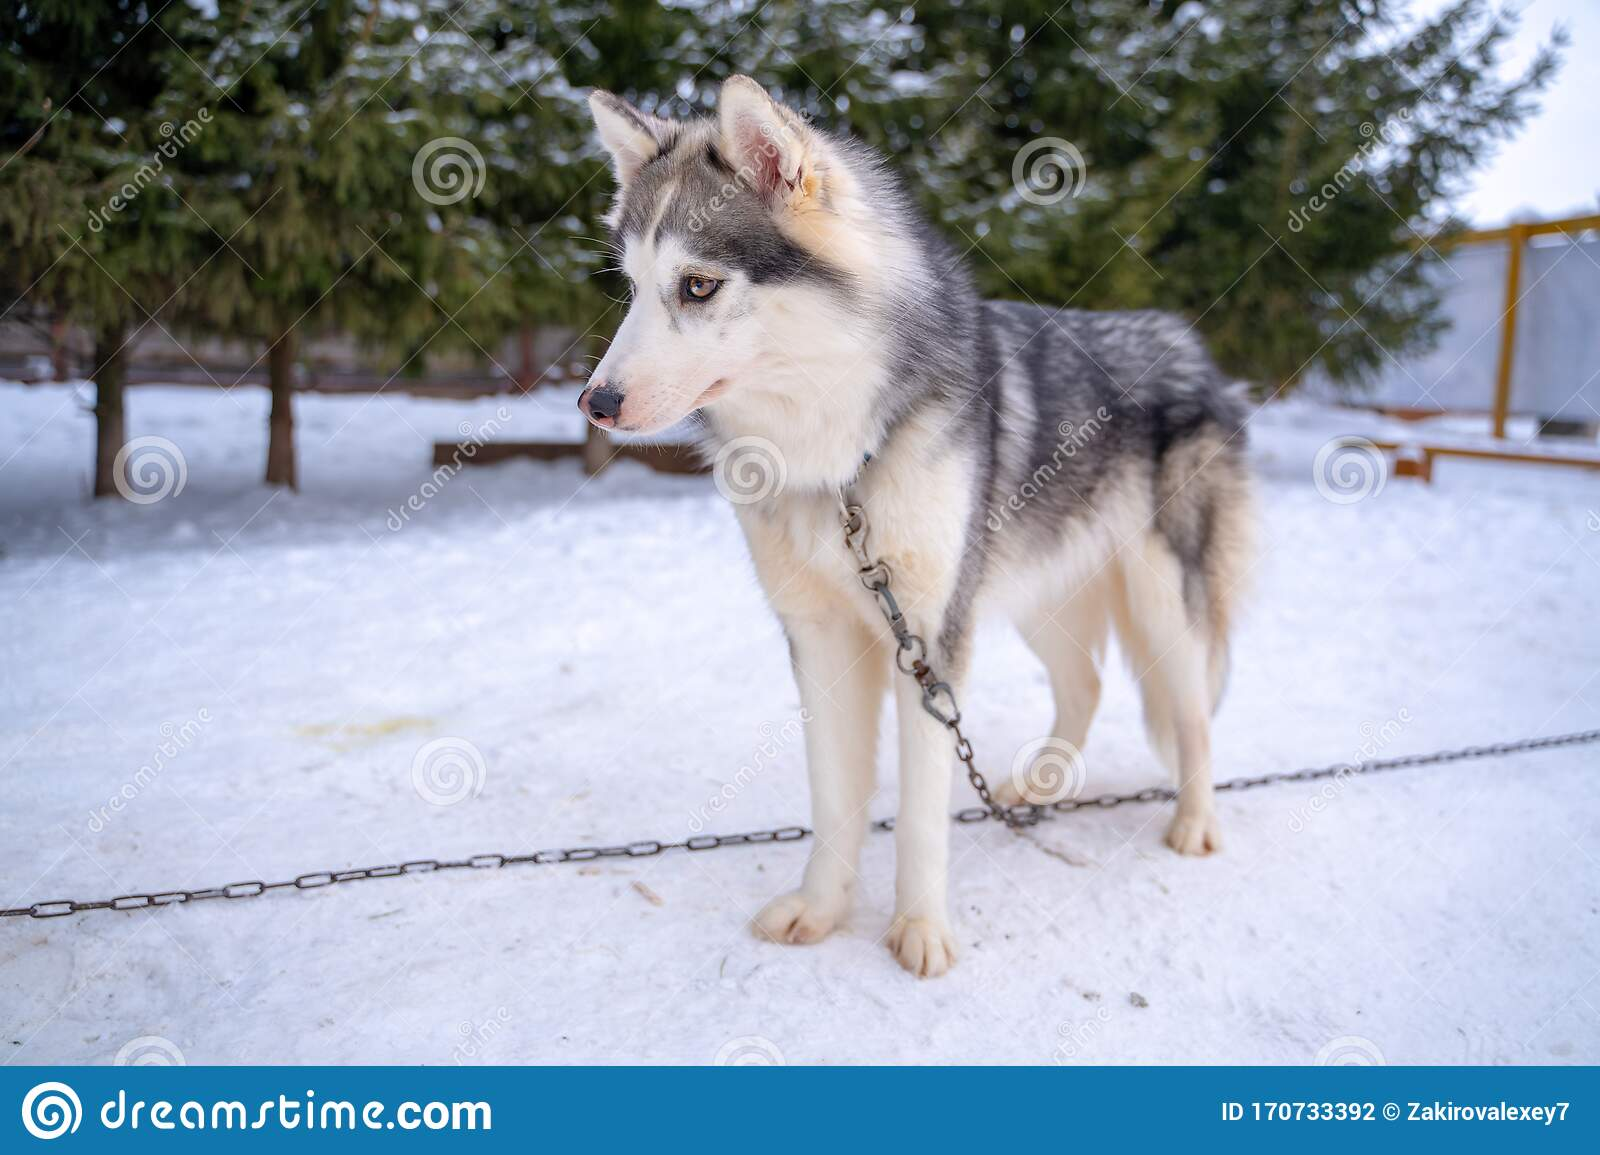 Husky Puppy Cute Adorable Baby Dog Face Waiting In The Dog House With Grass For Playing And Eating In The Animal Pet Stock Photo Image Of Blue Collar 170733392